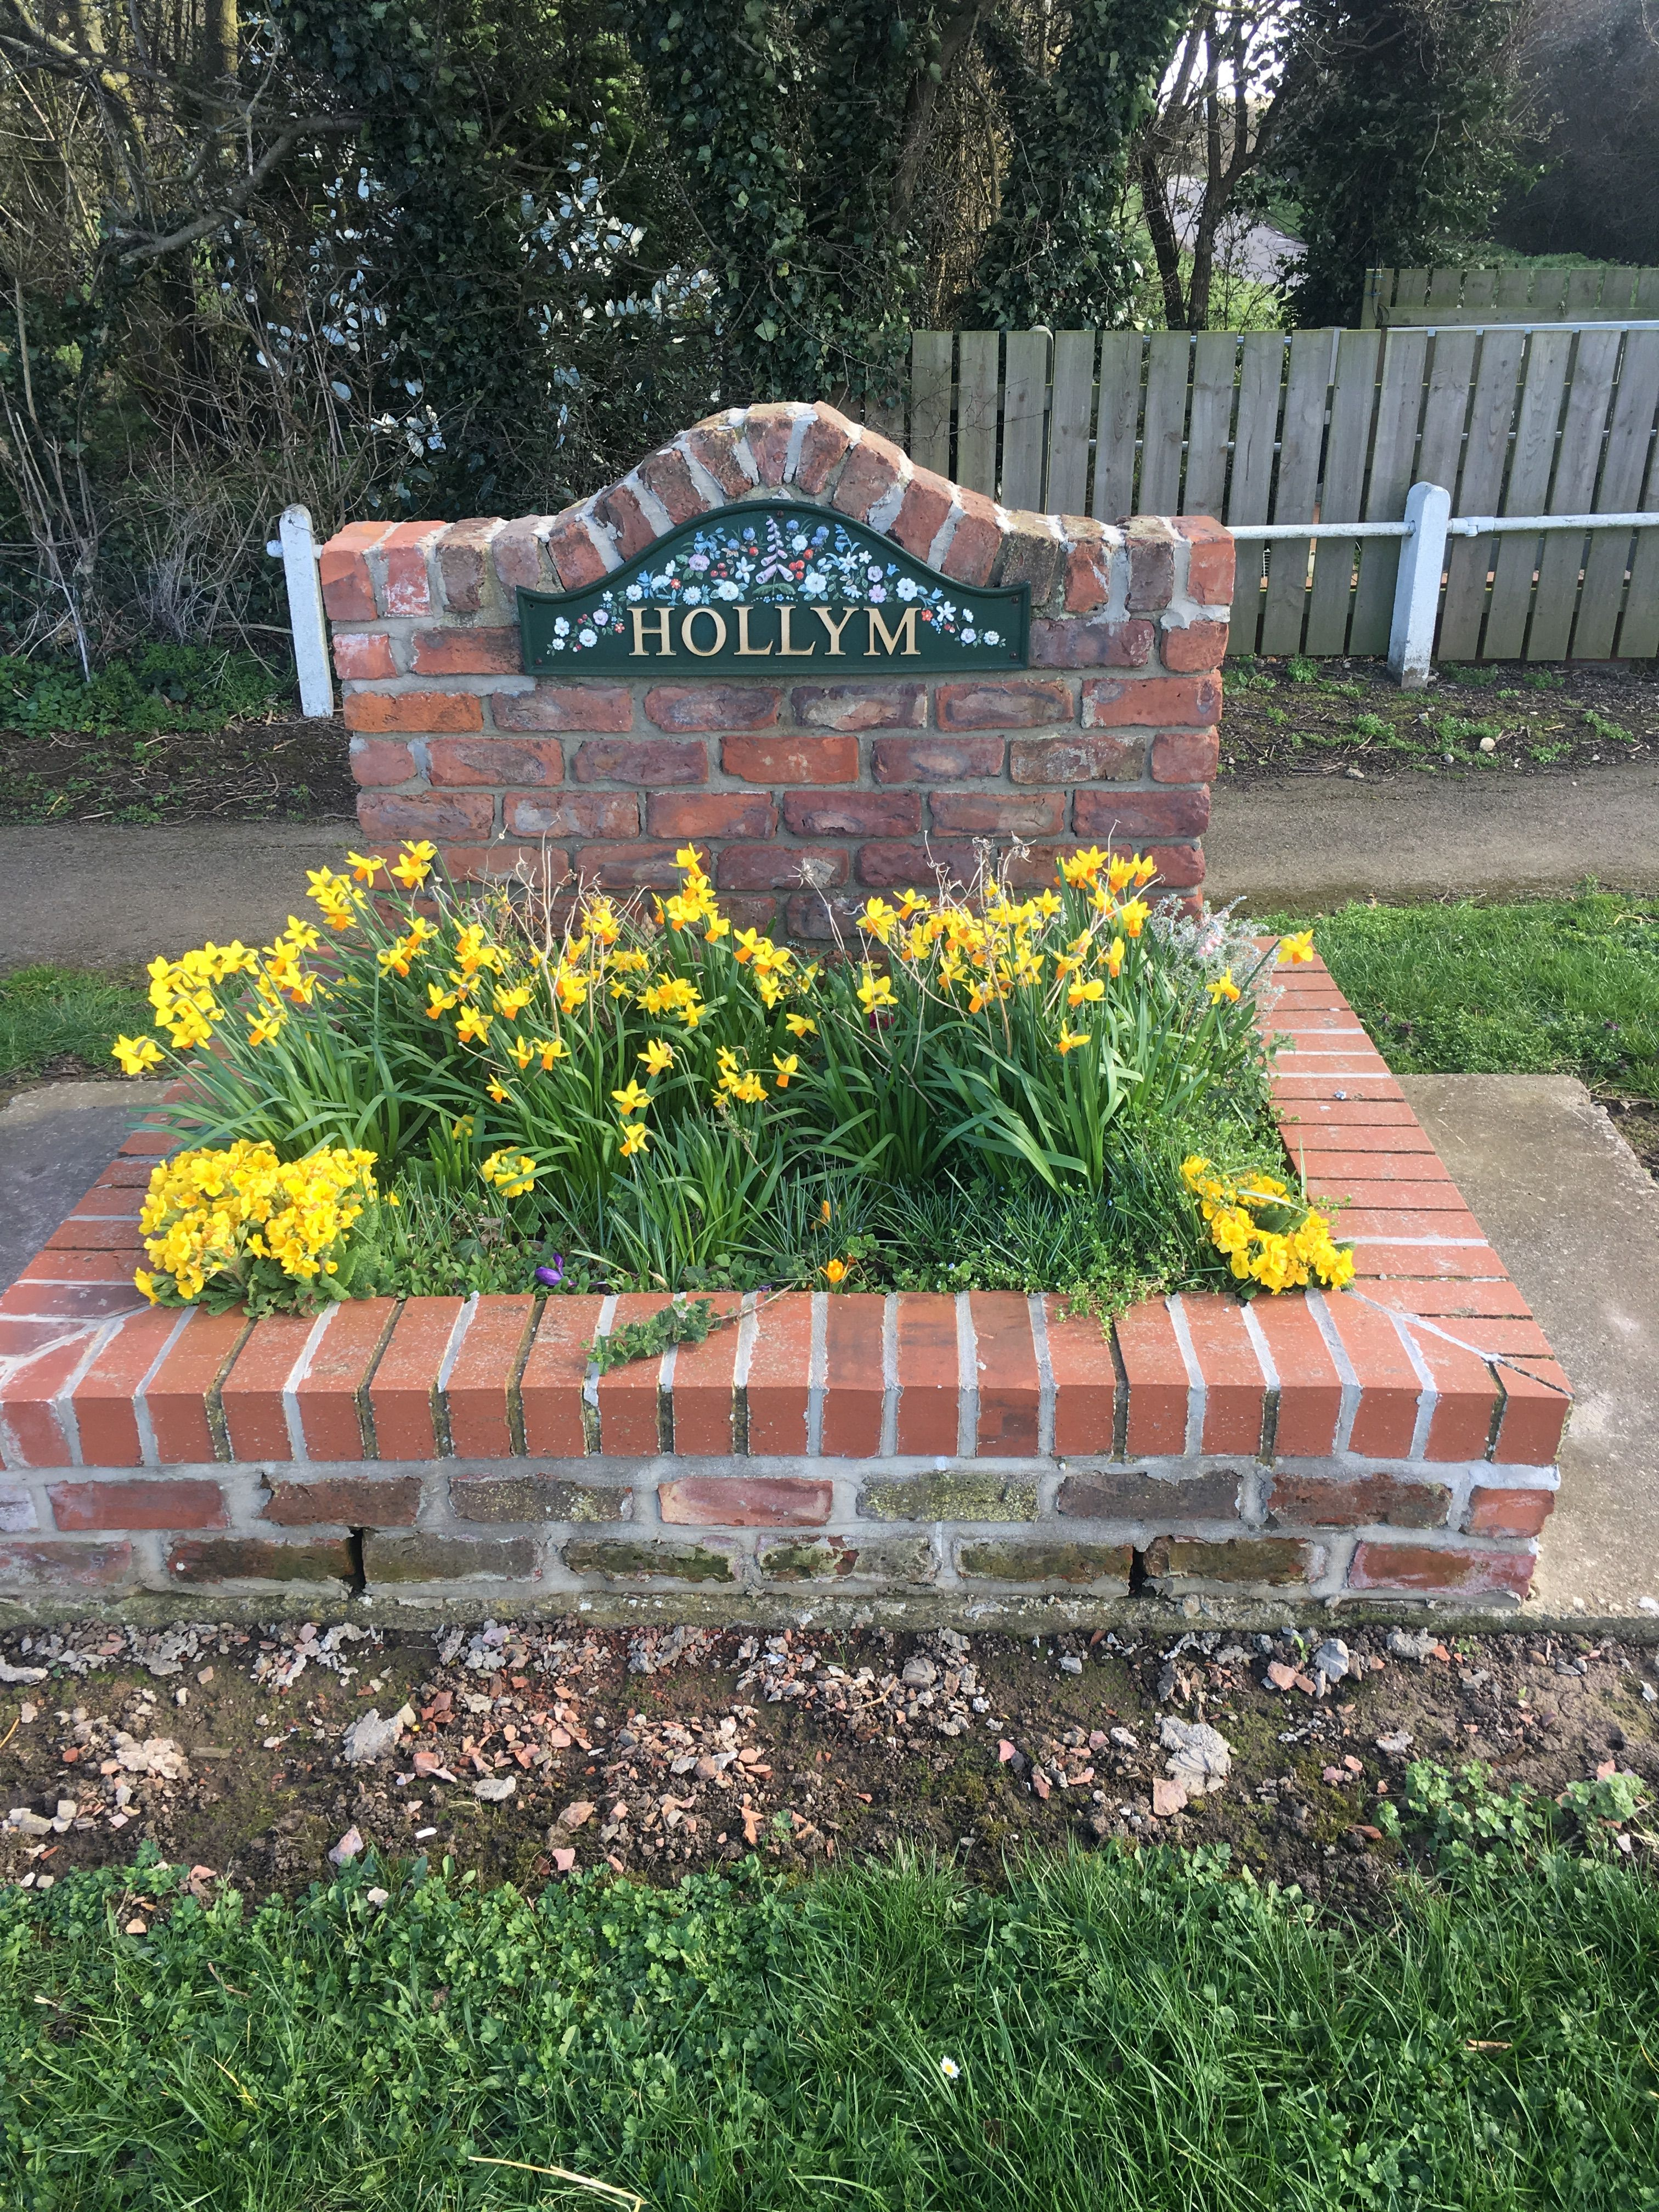 Hollym East Yorkshire | Outdoor structures, Outdoor ...